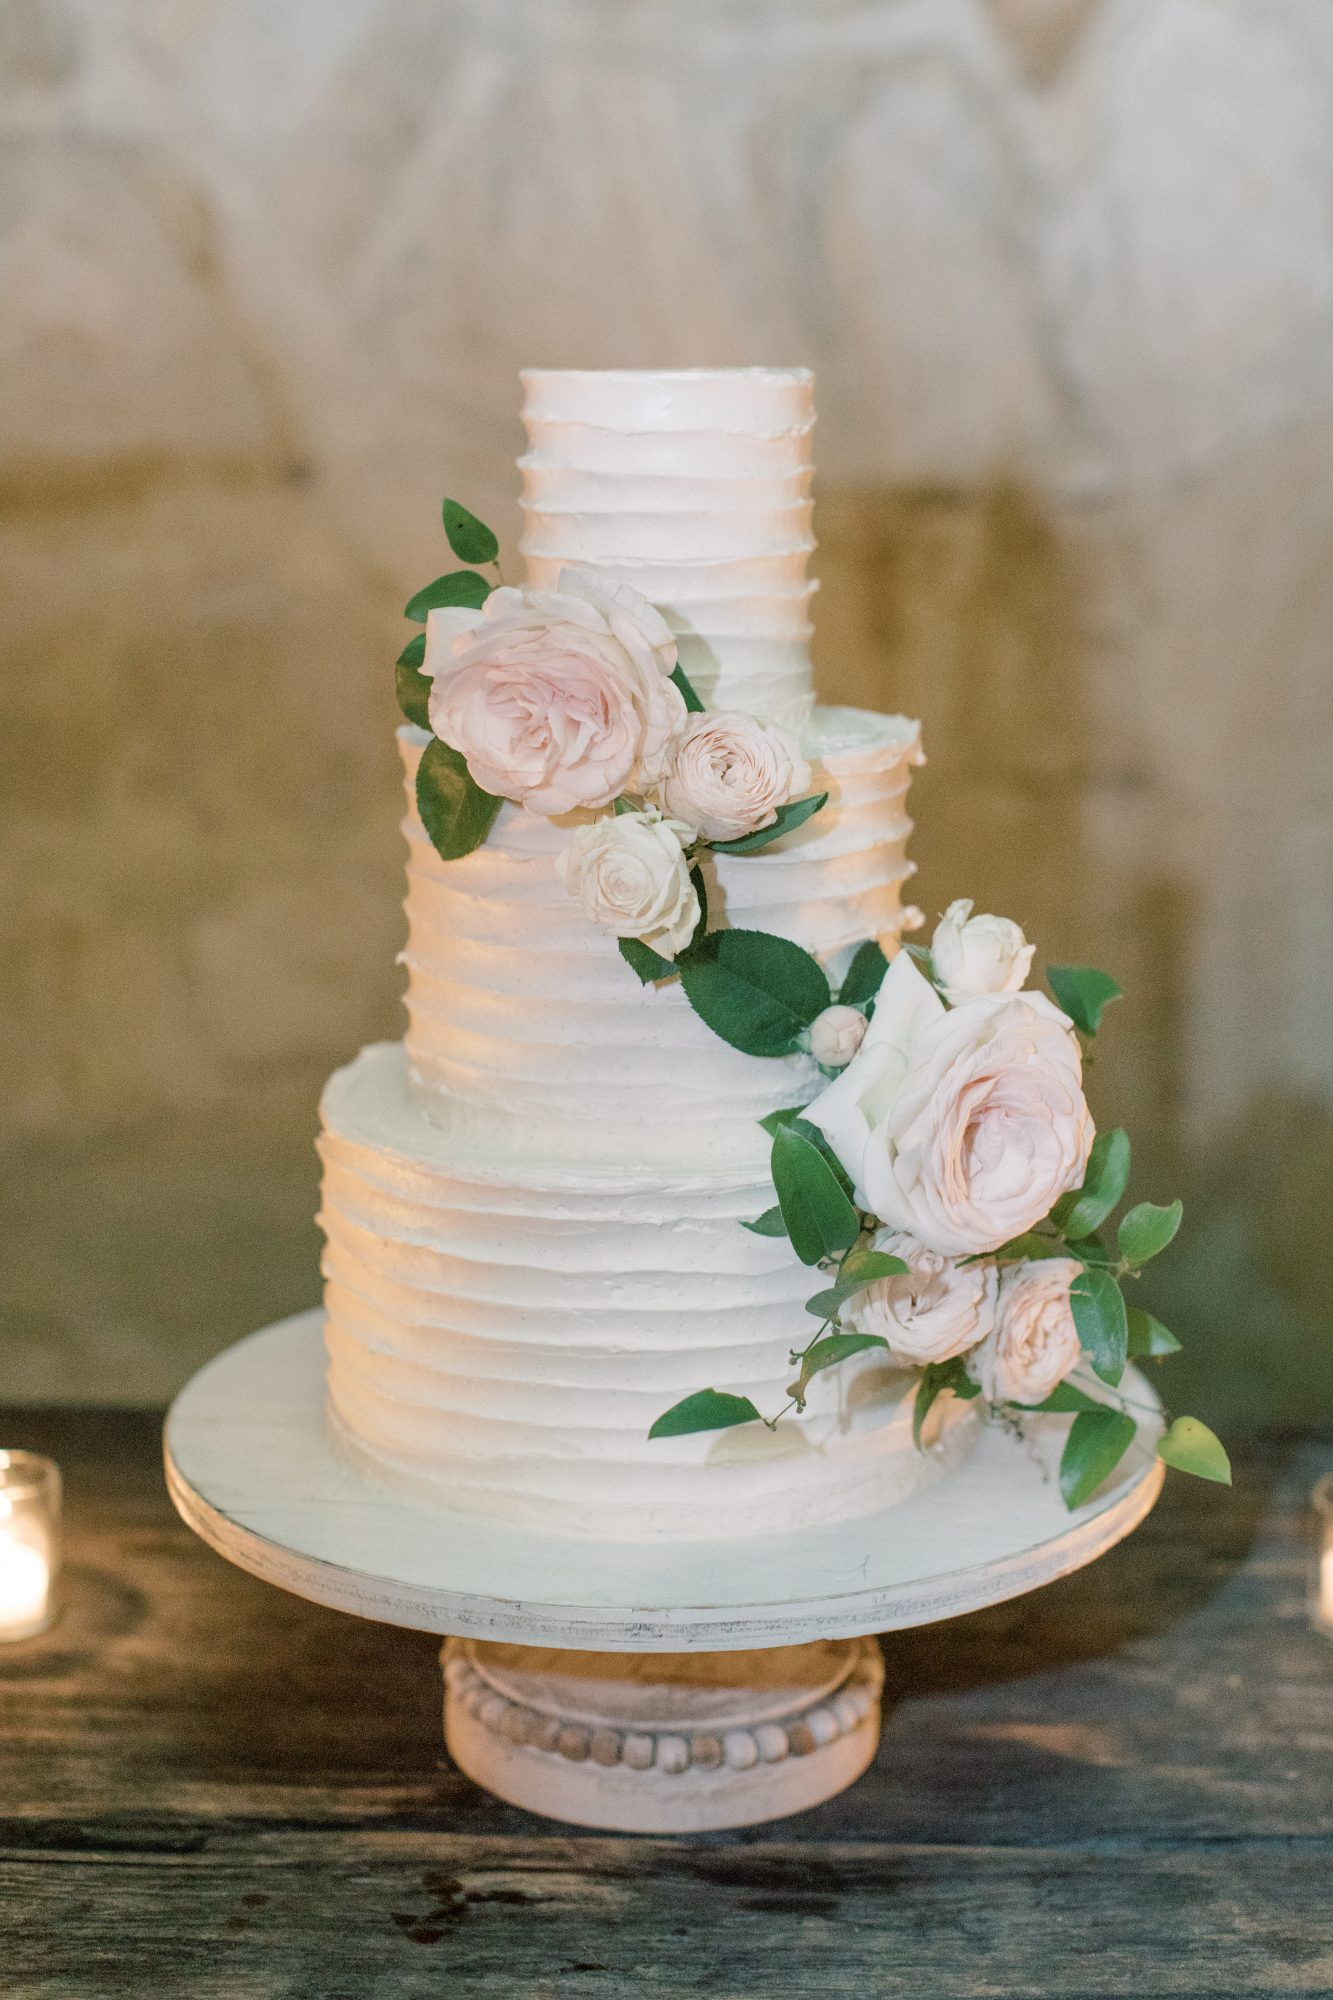 three-tiered wedding cake with floral accent